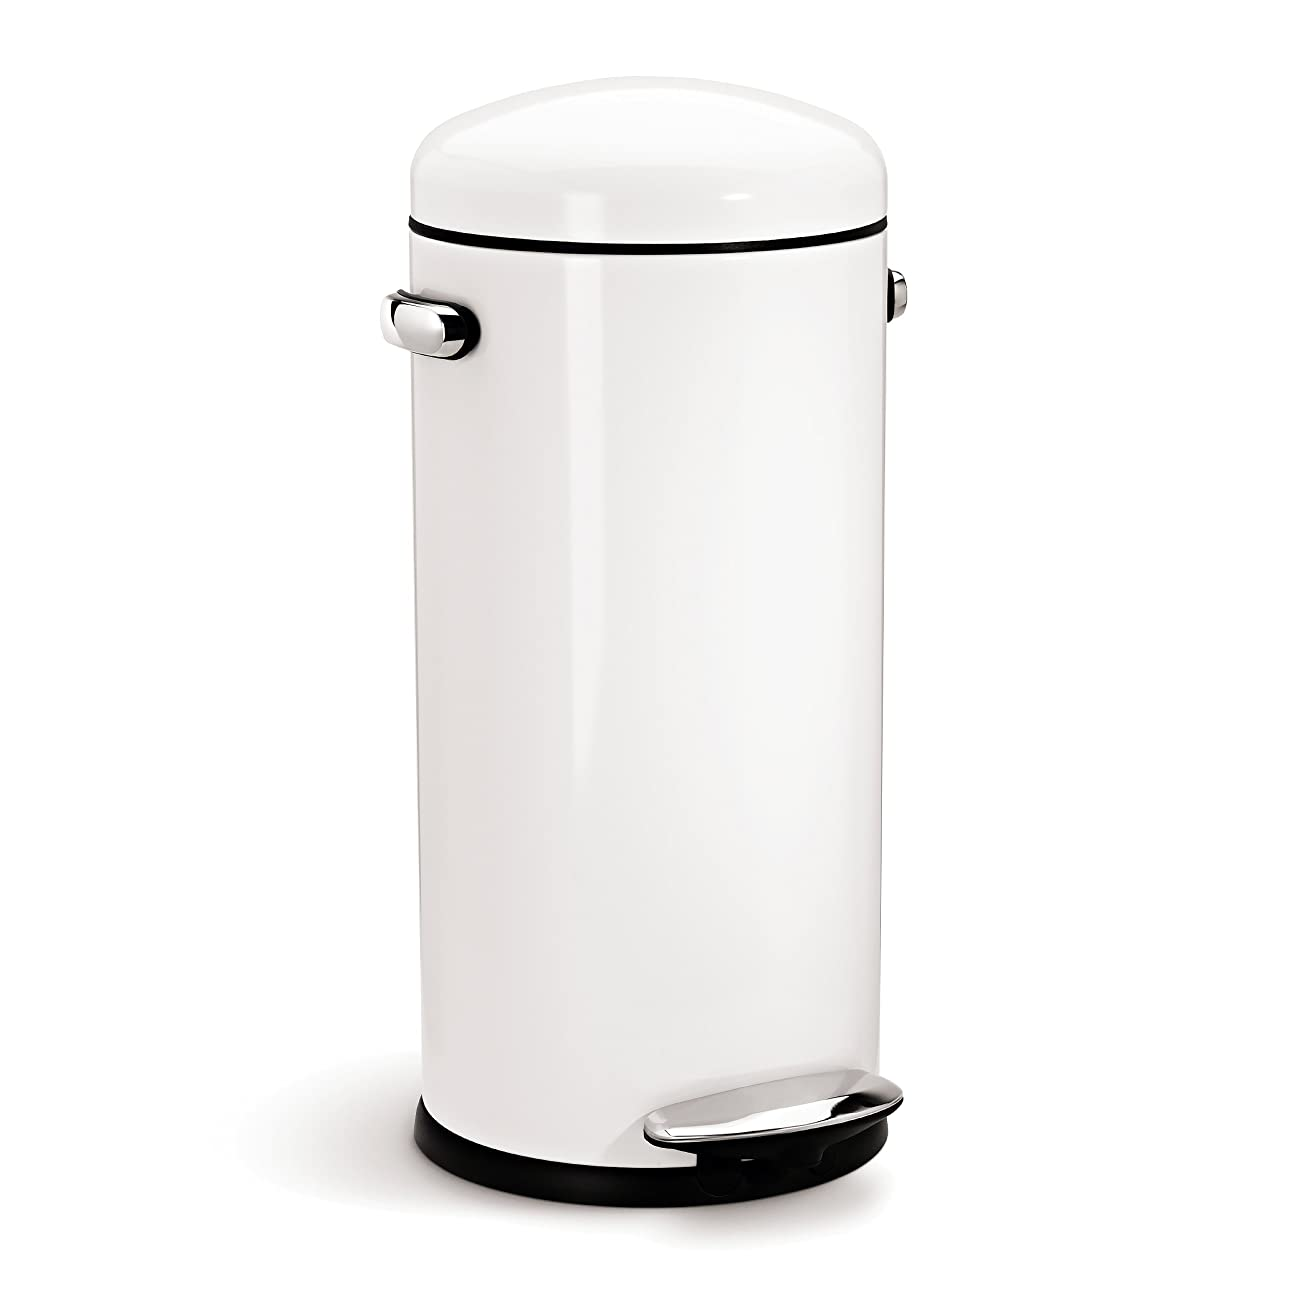 simplehuman Round Retro Step Trash Can, White Steel, 30 L / 8 Gal 0